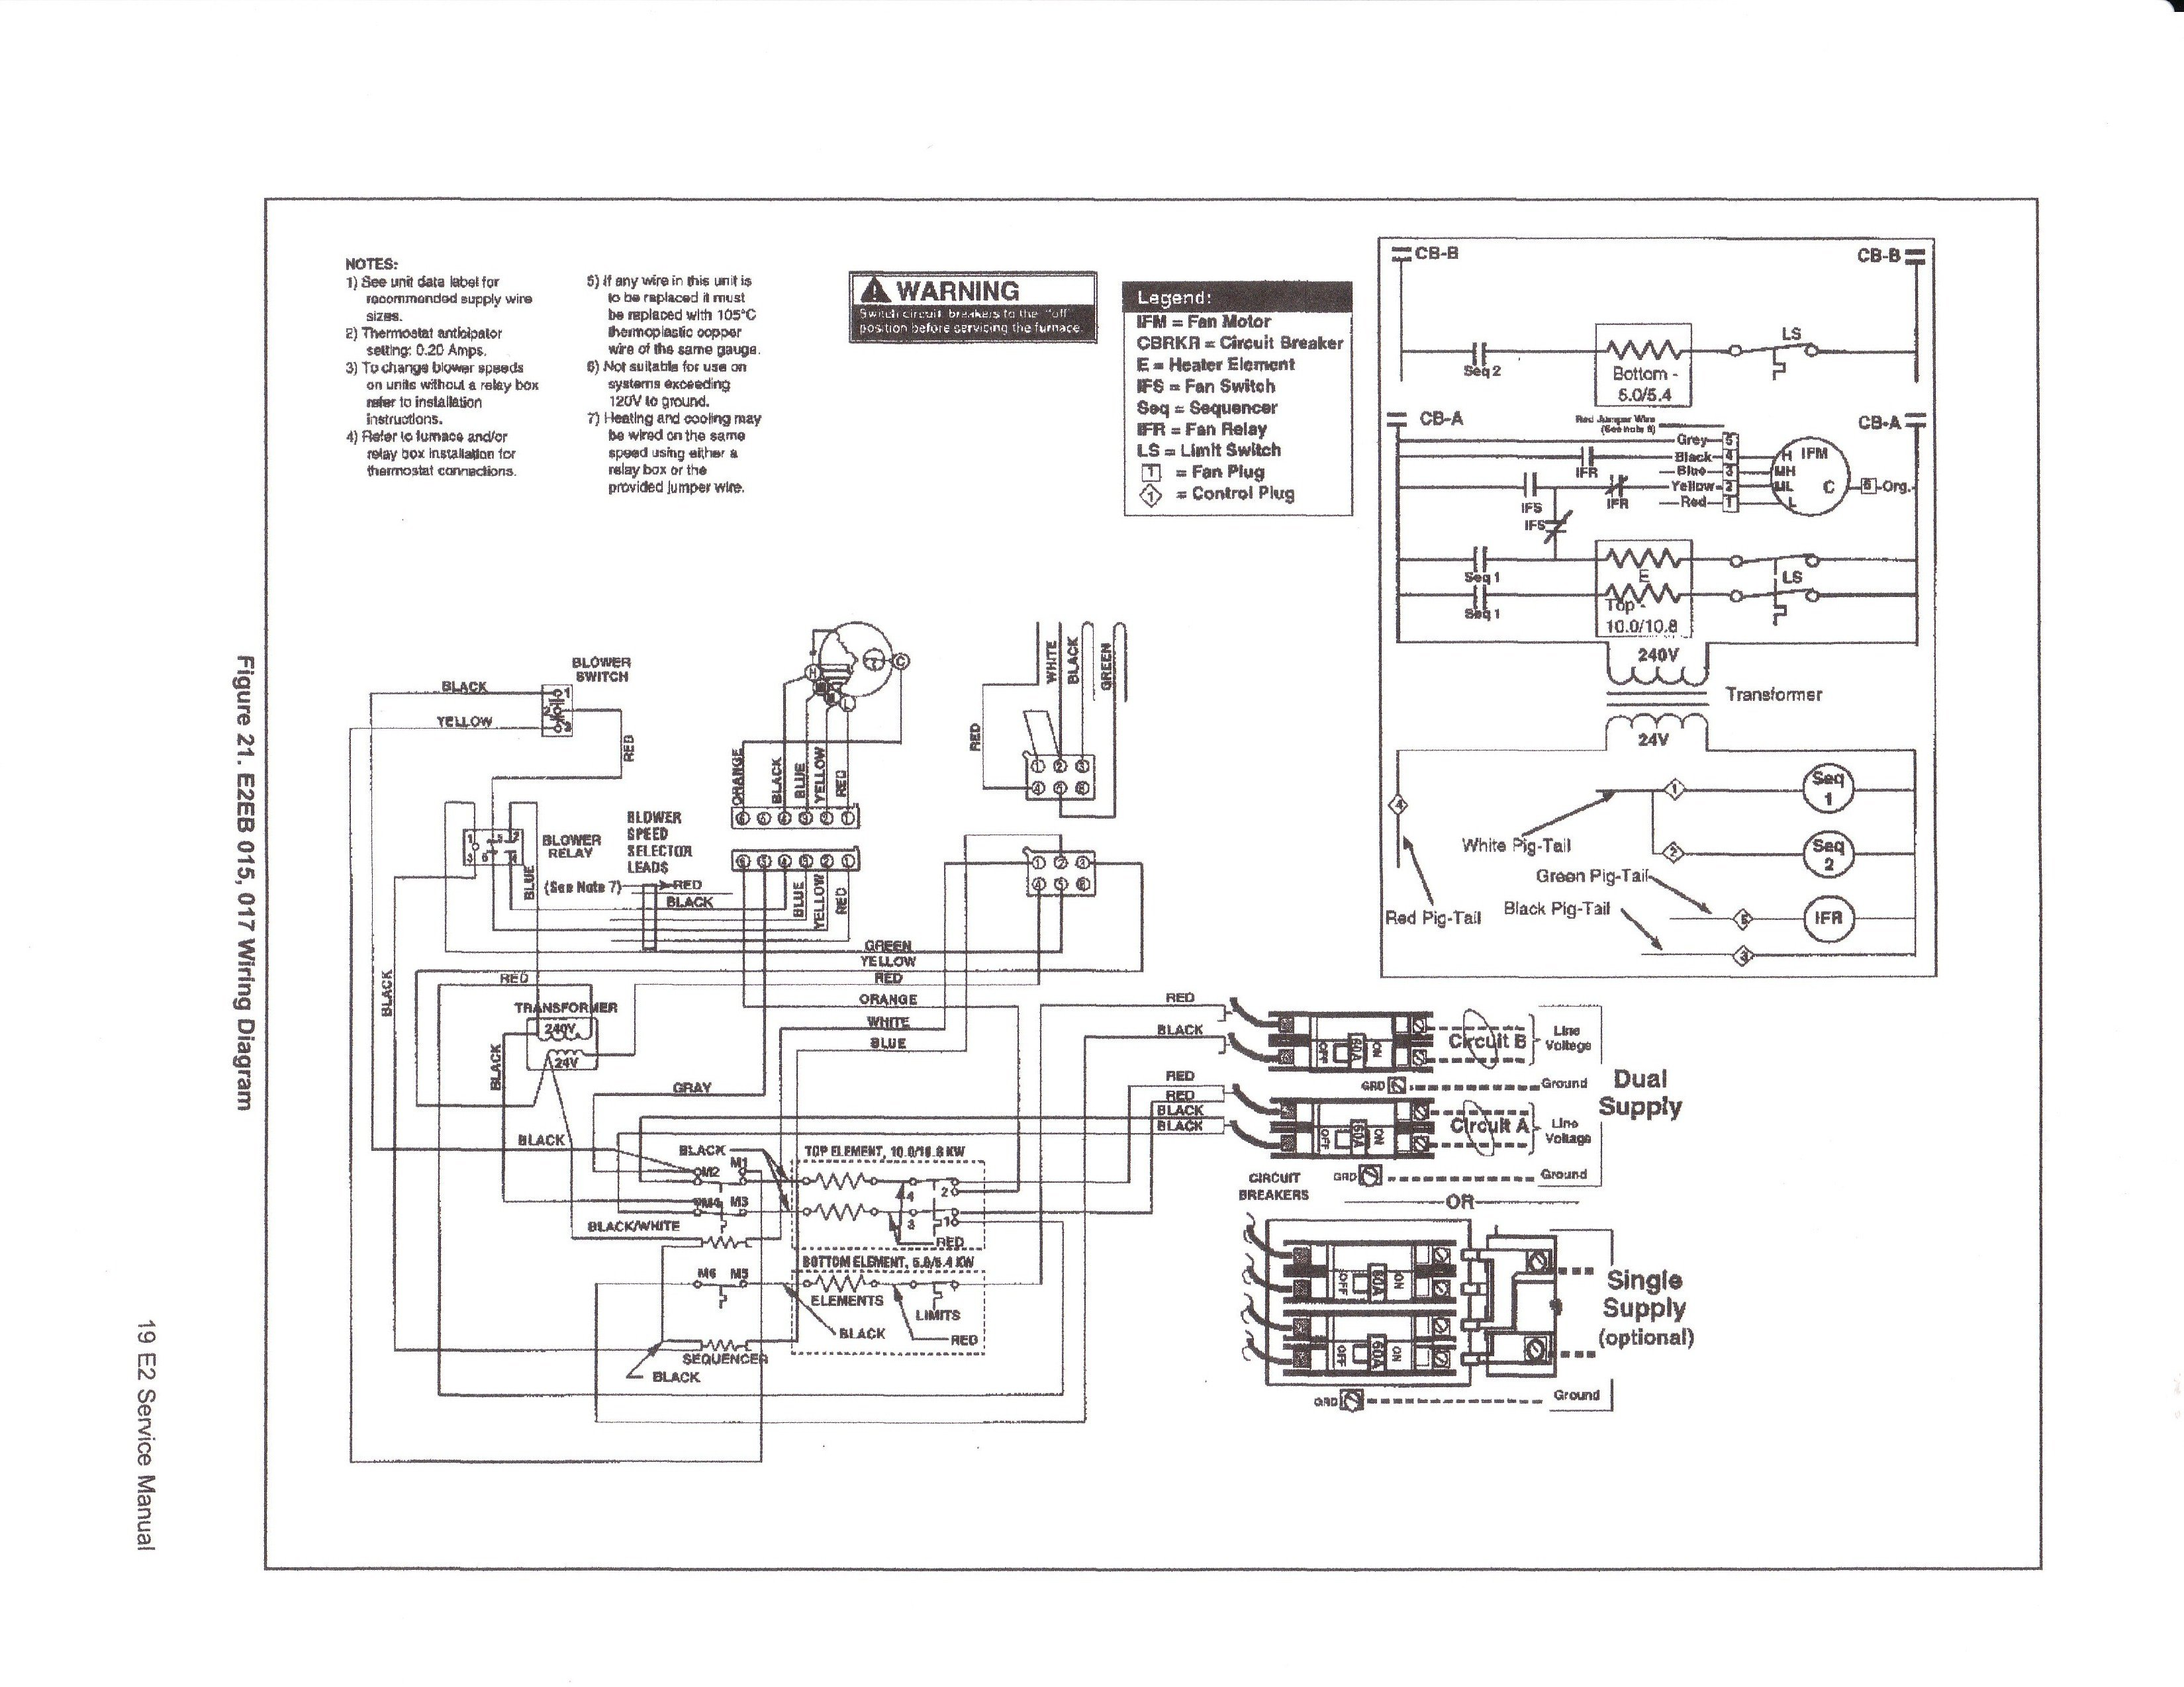 Mobile Home Intertherm Electric Furnace Wiring Diagram from schematron.org